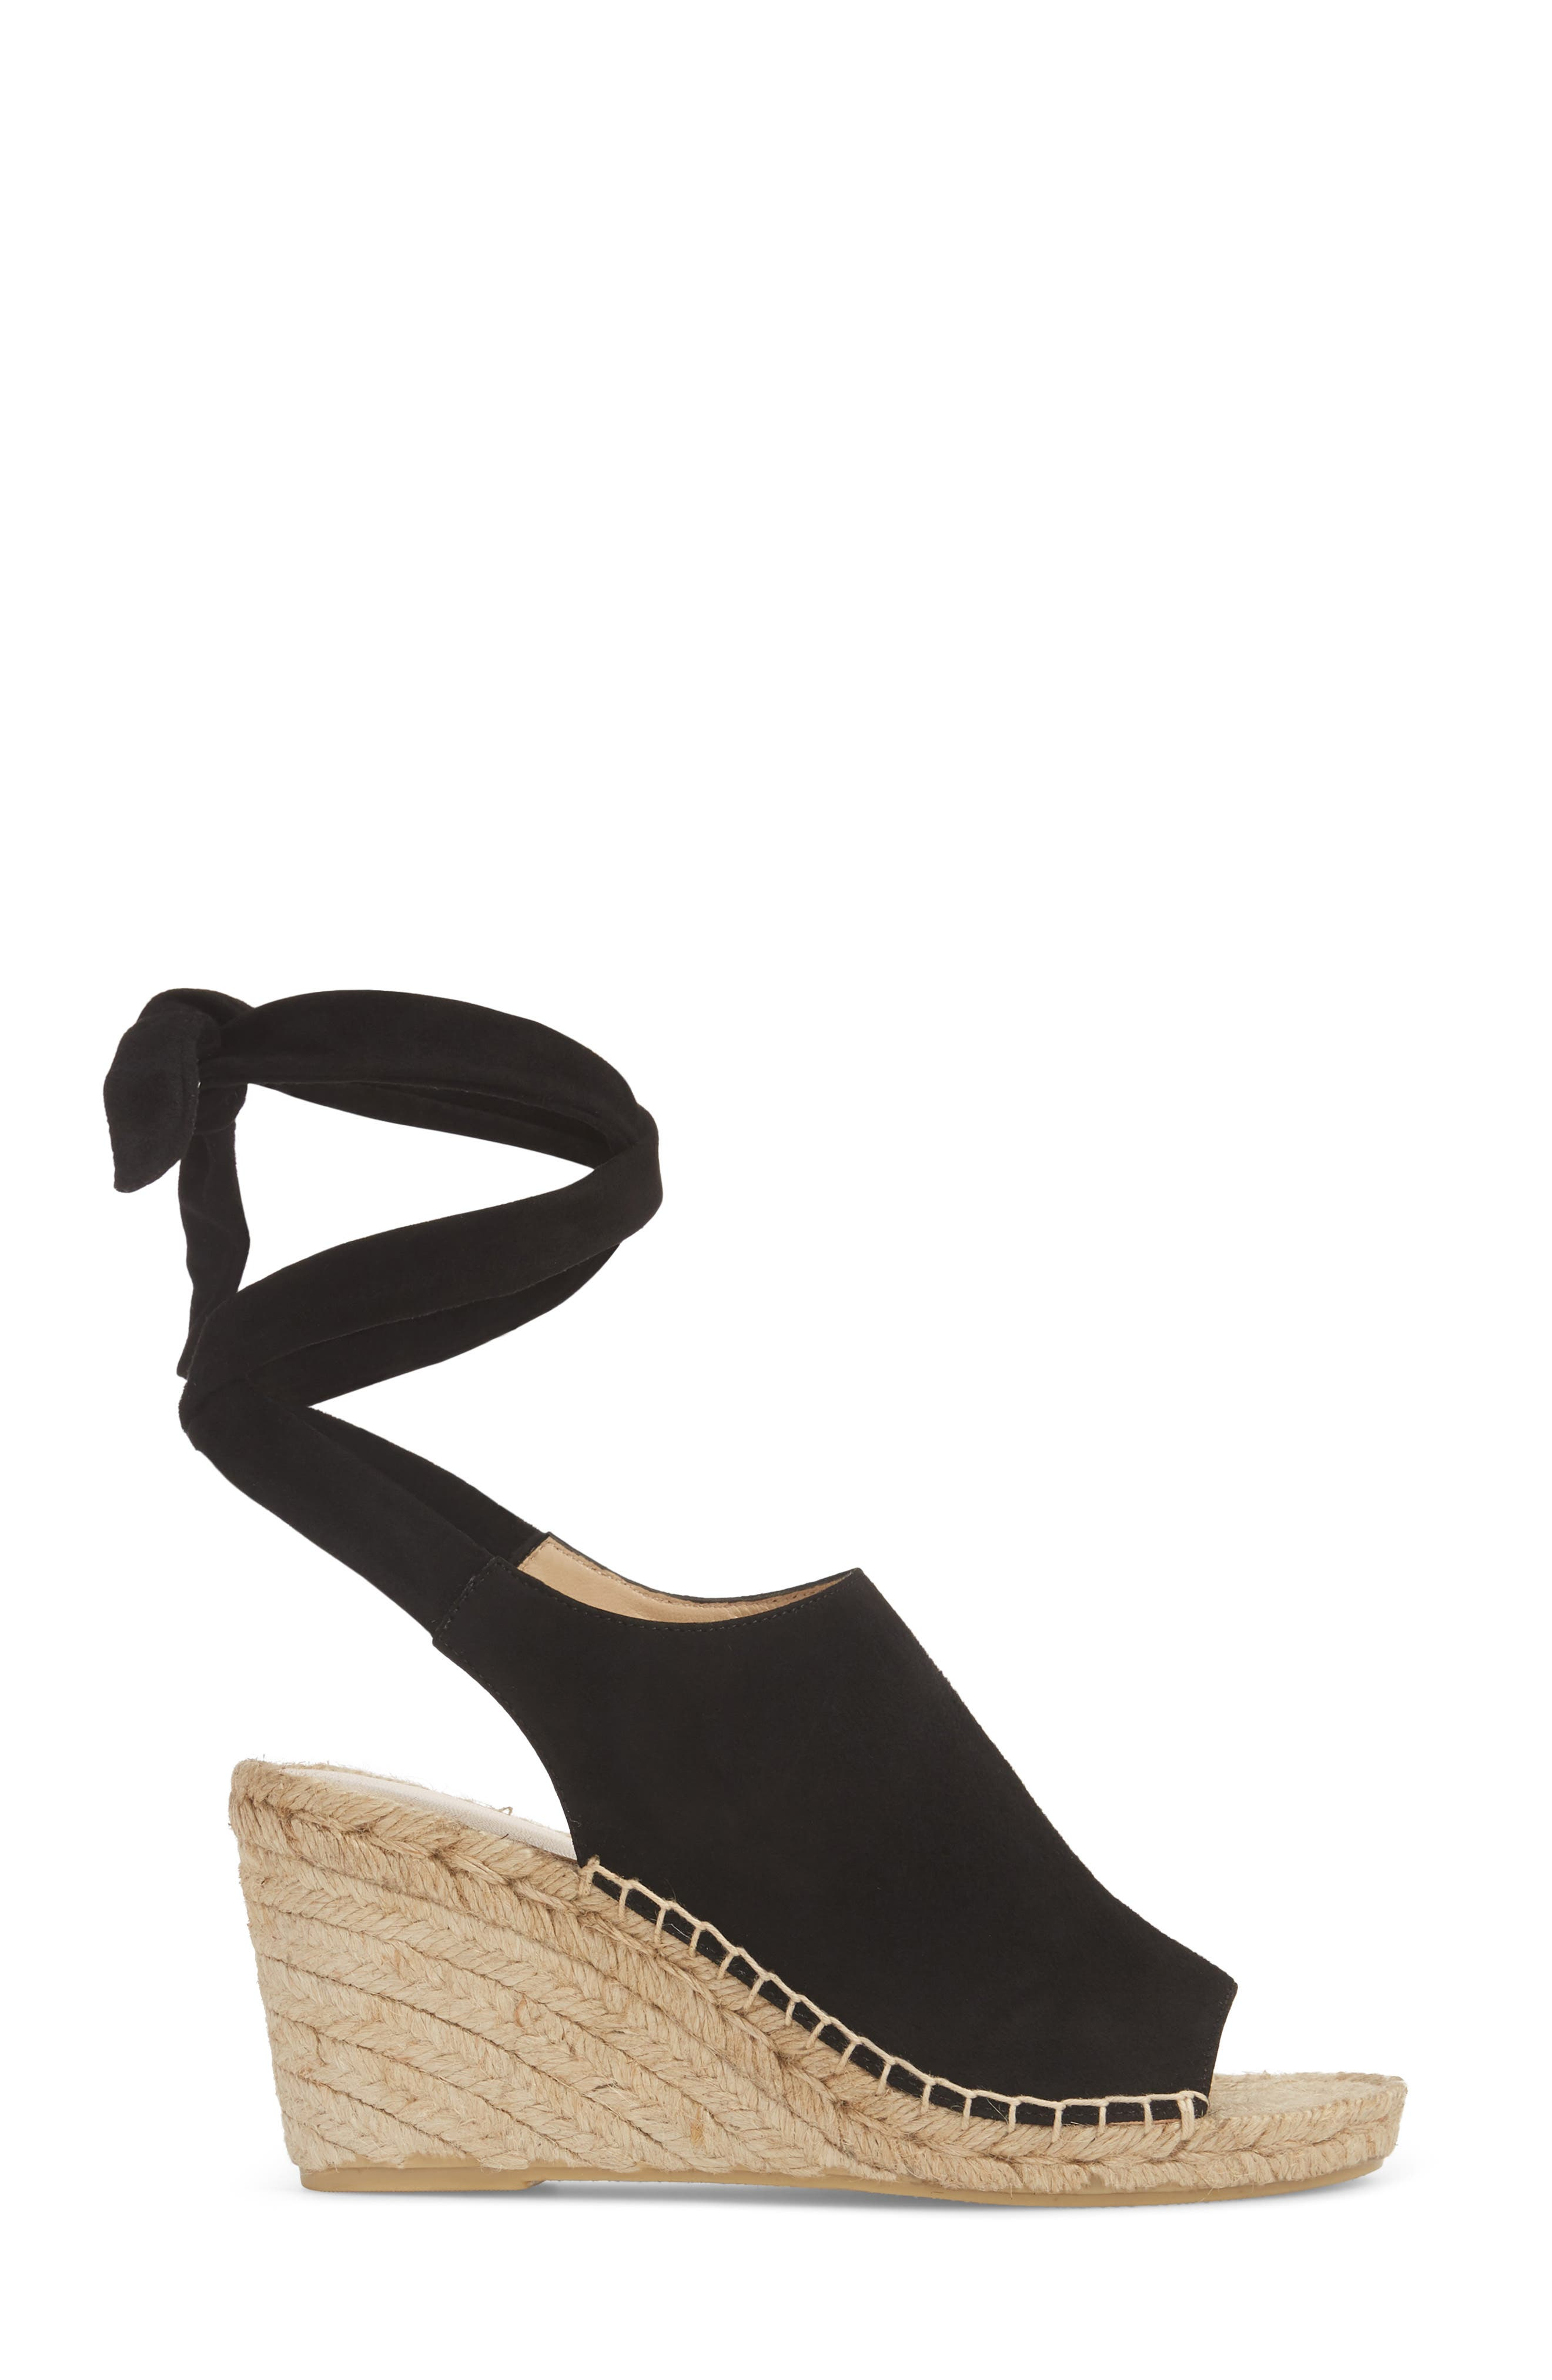 Vie Espadrille Wedge Sandal,                             Alternate thumbnail 3, color,                             BLACK SUEDE